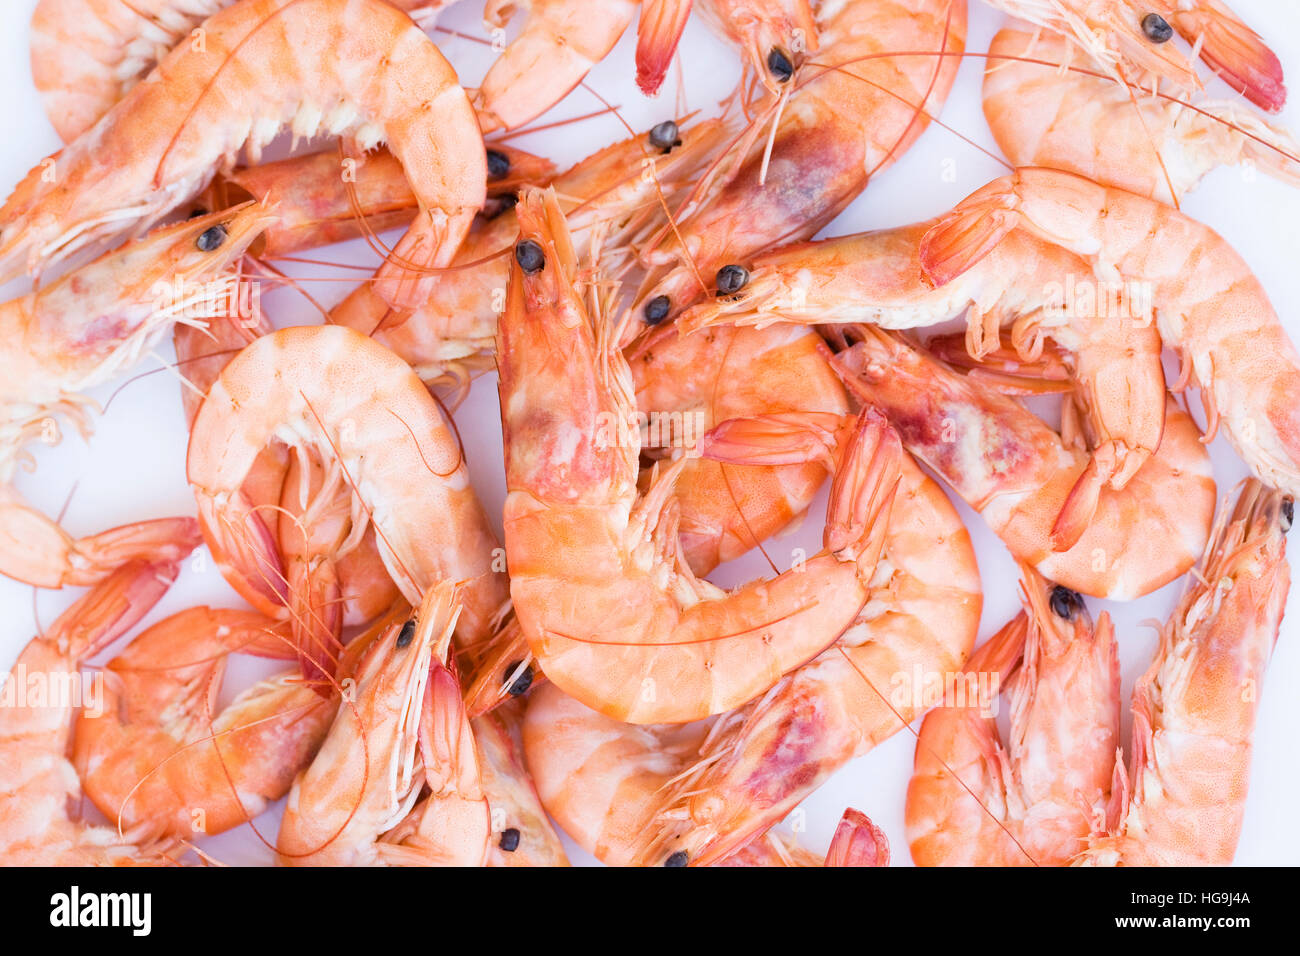 Crevettes on a white background. - Stock Image